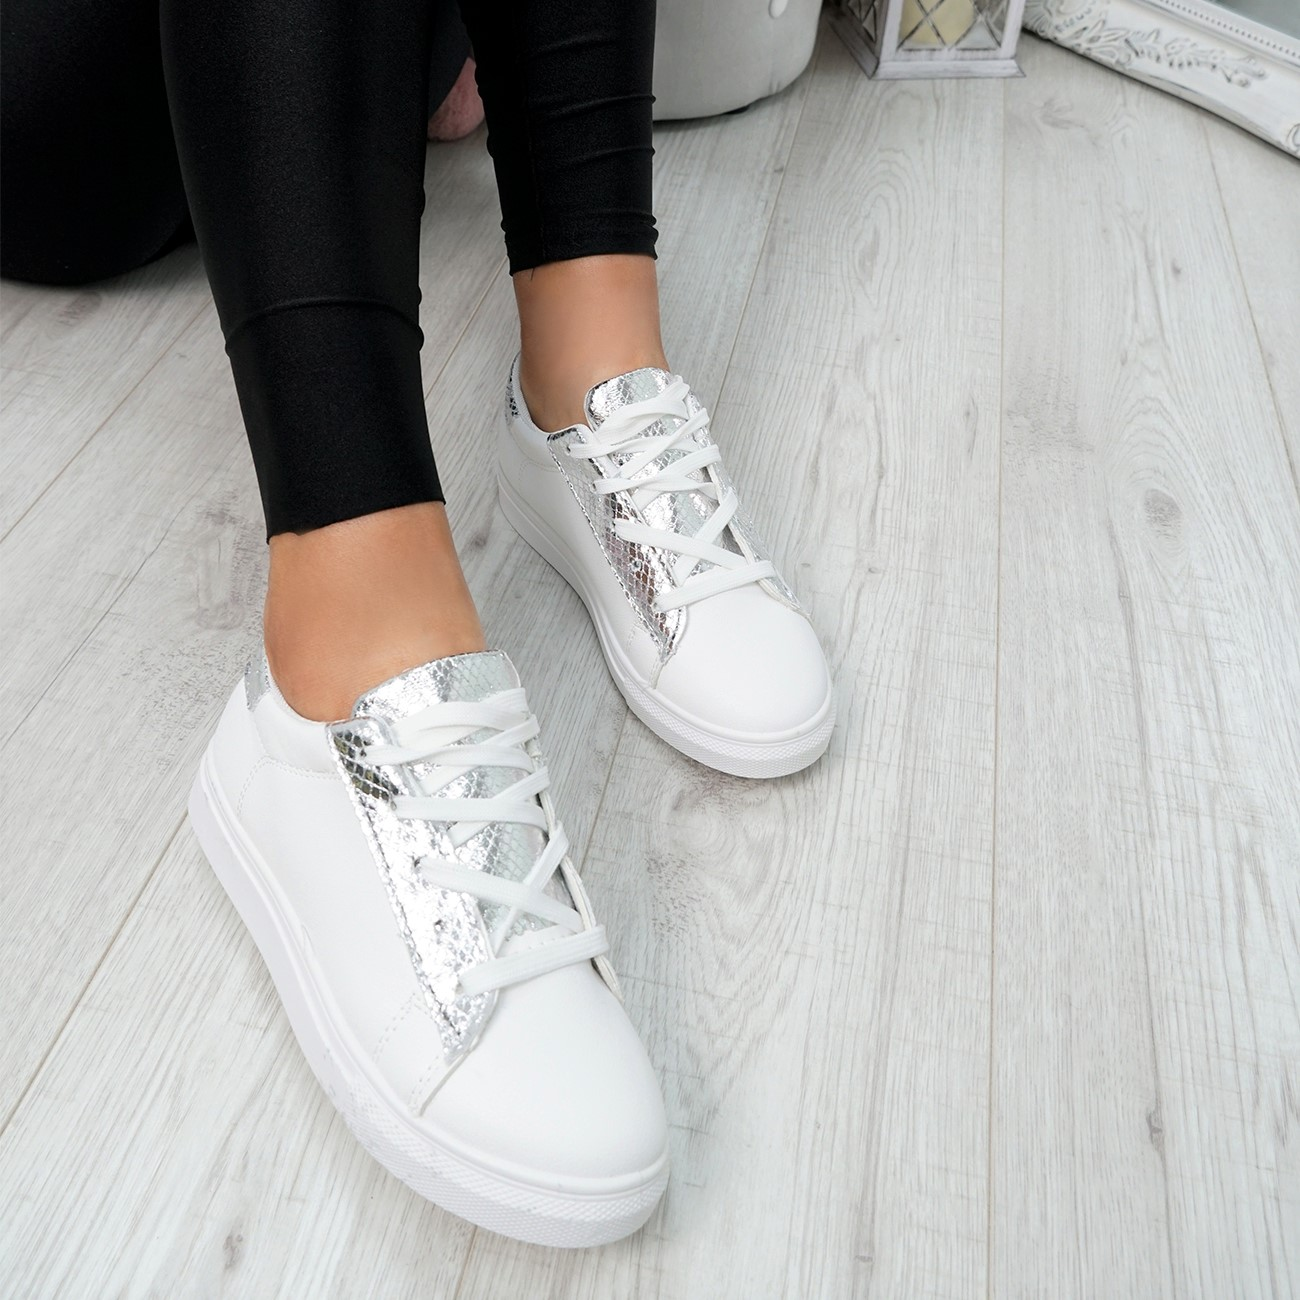 WOMENS-LADIES-SNAKE-SKIN-GLITTER-LACE-UP-TRAINERS-PLIMSOLLS-SNEAKERS-SHOES thumbnail 24